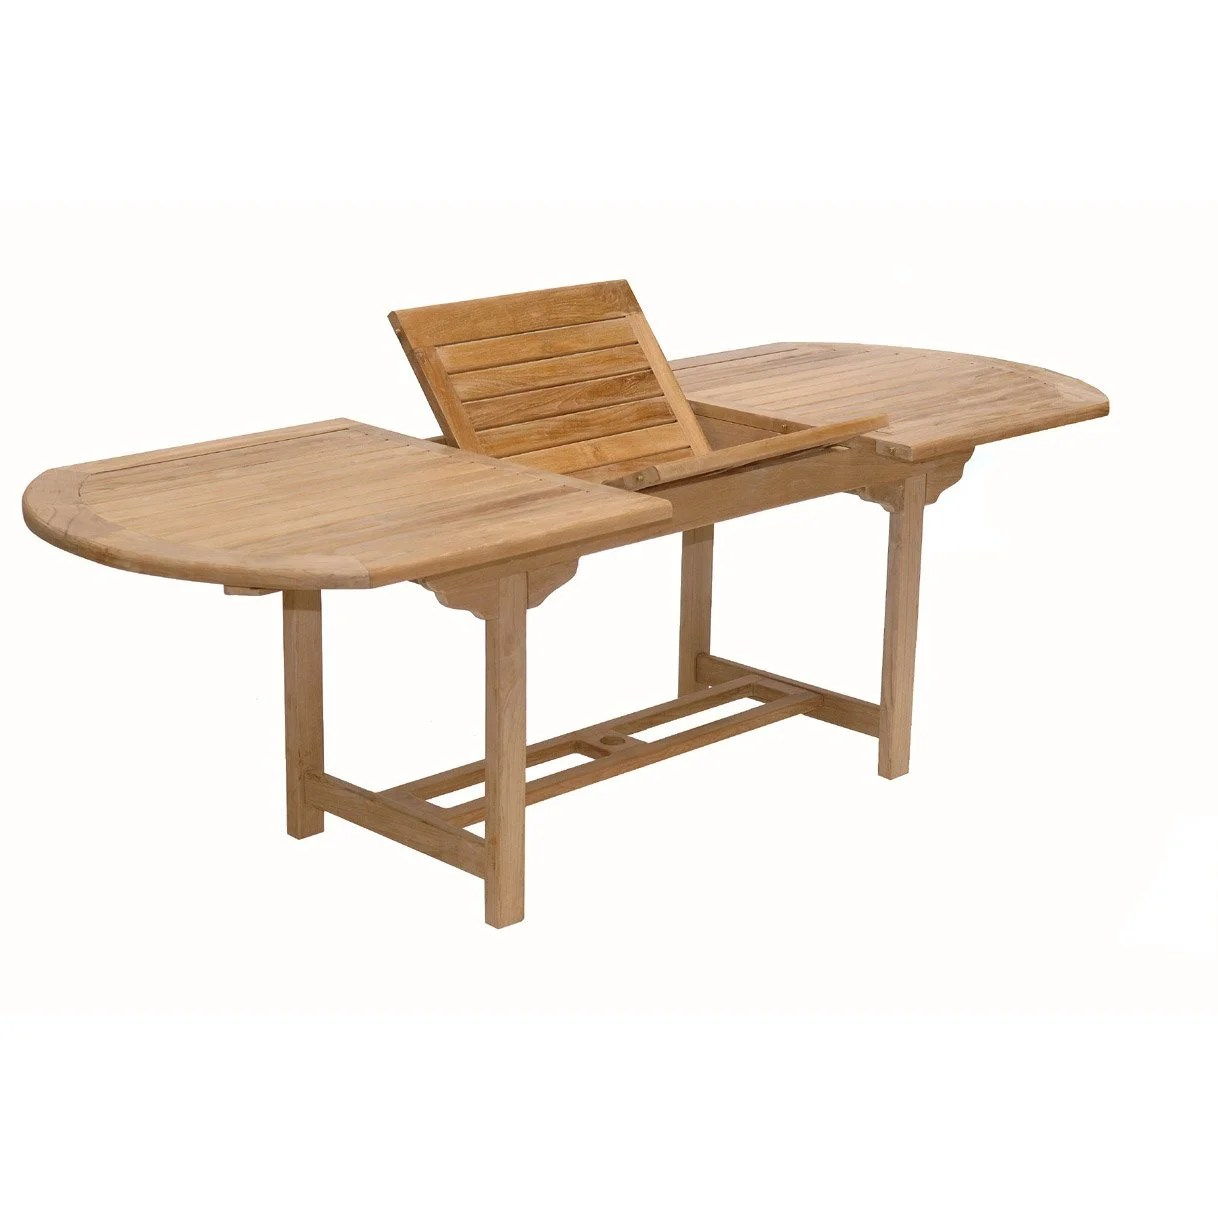 Table De Jardin Table De Jardin Azur Ovale Naturel 8 Personnes Leroy Merlin